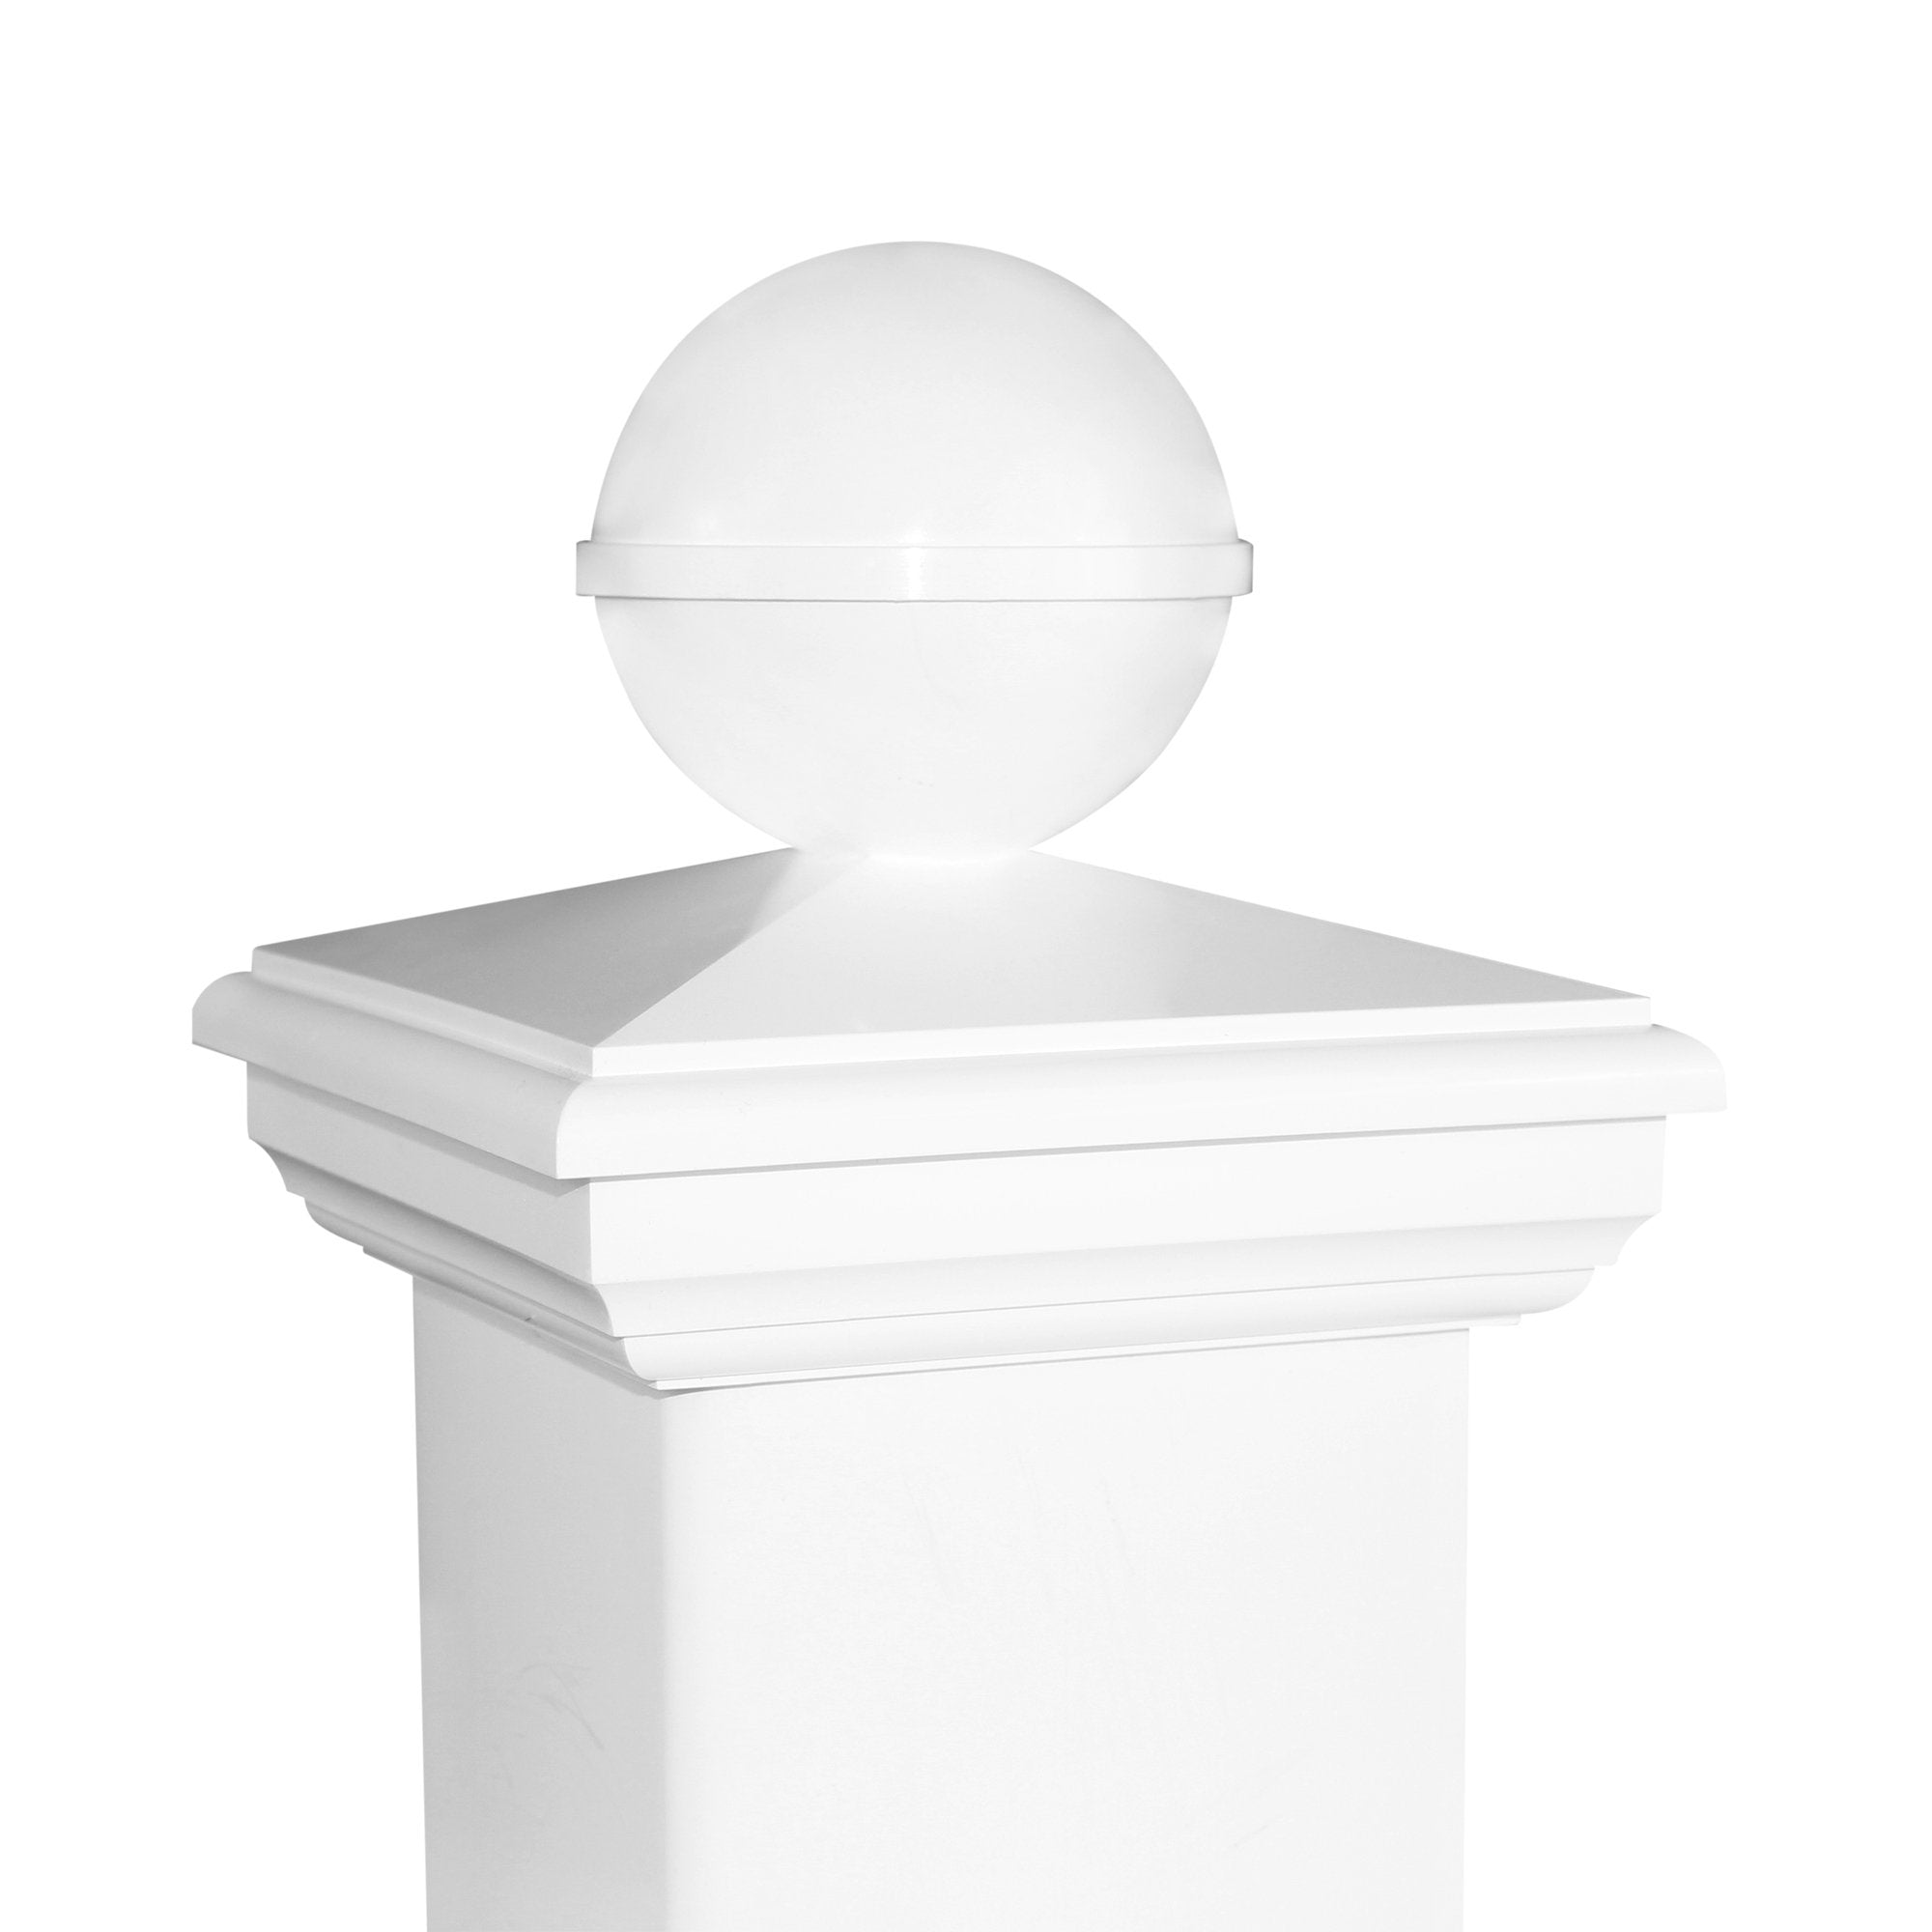 5x5 NEW ENGLAND BALL PVC POST CAP $10.87 each